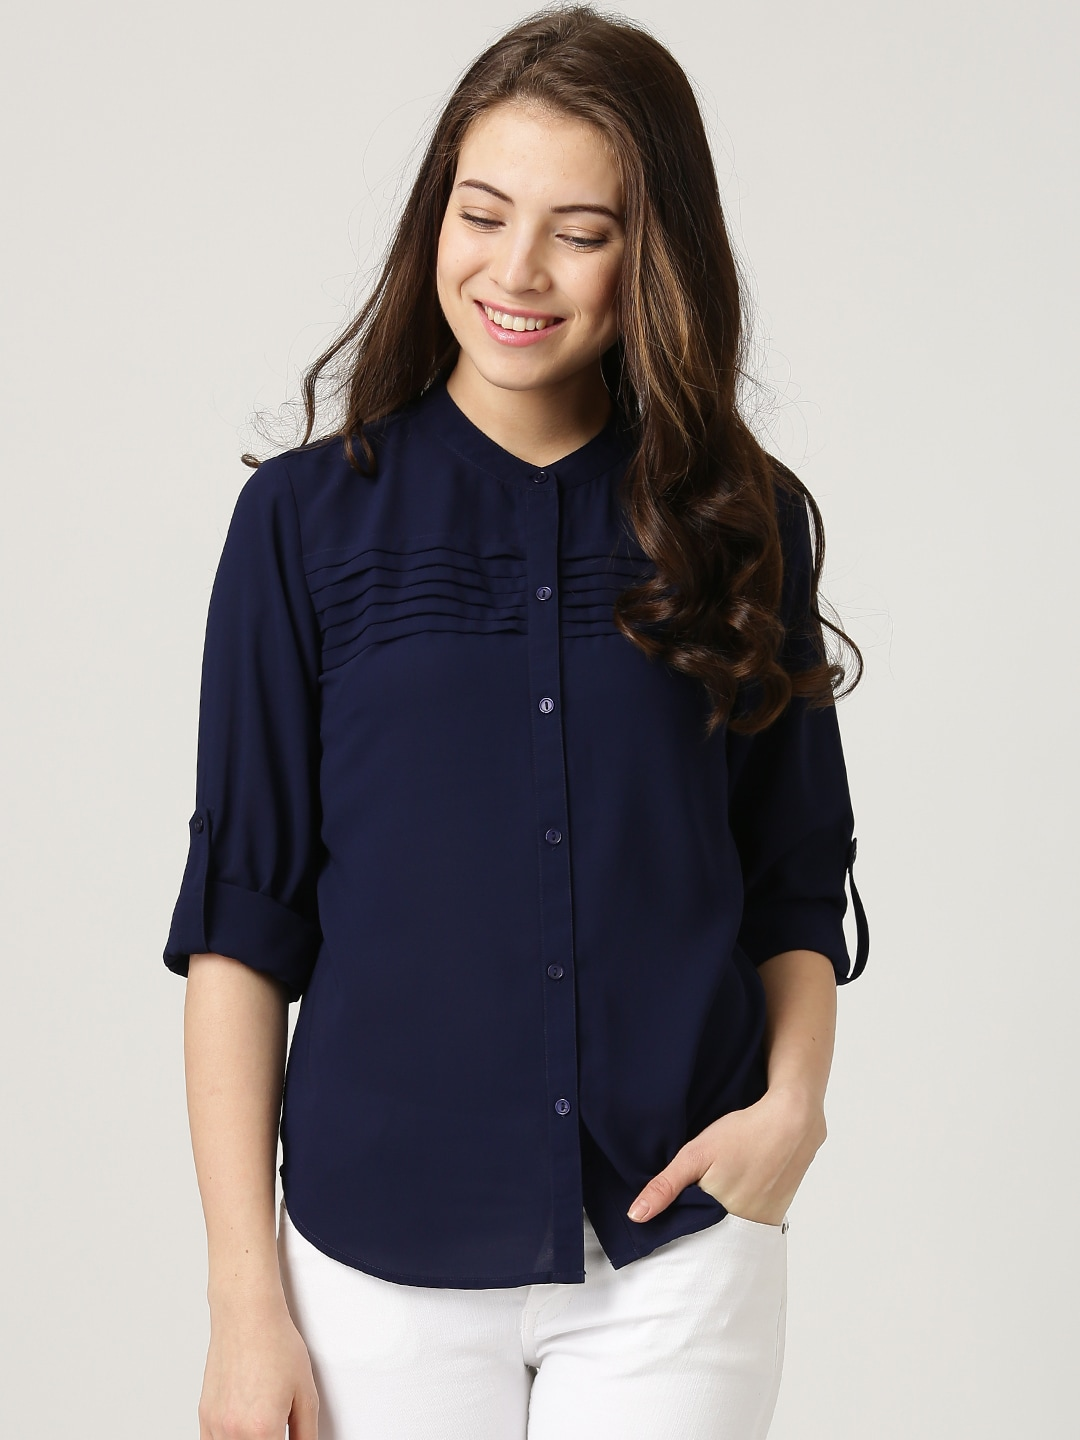 Get 50% off on Marie Claire Navy Crepe Shirt